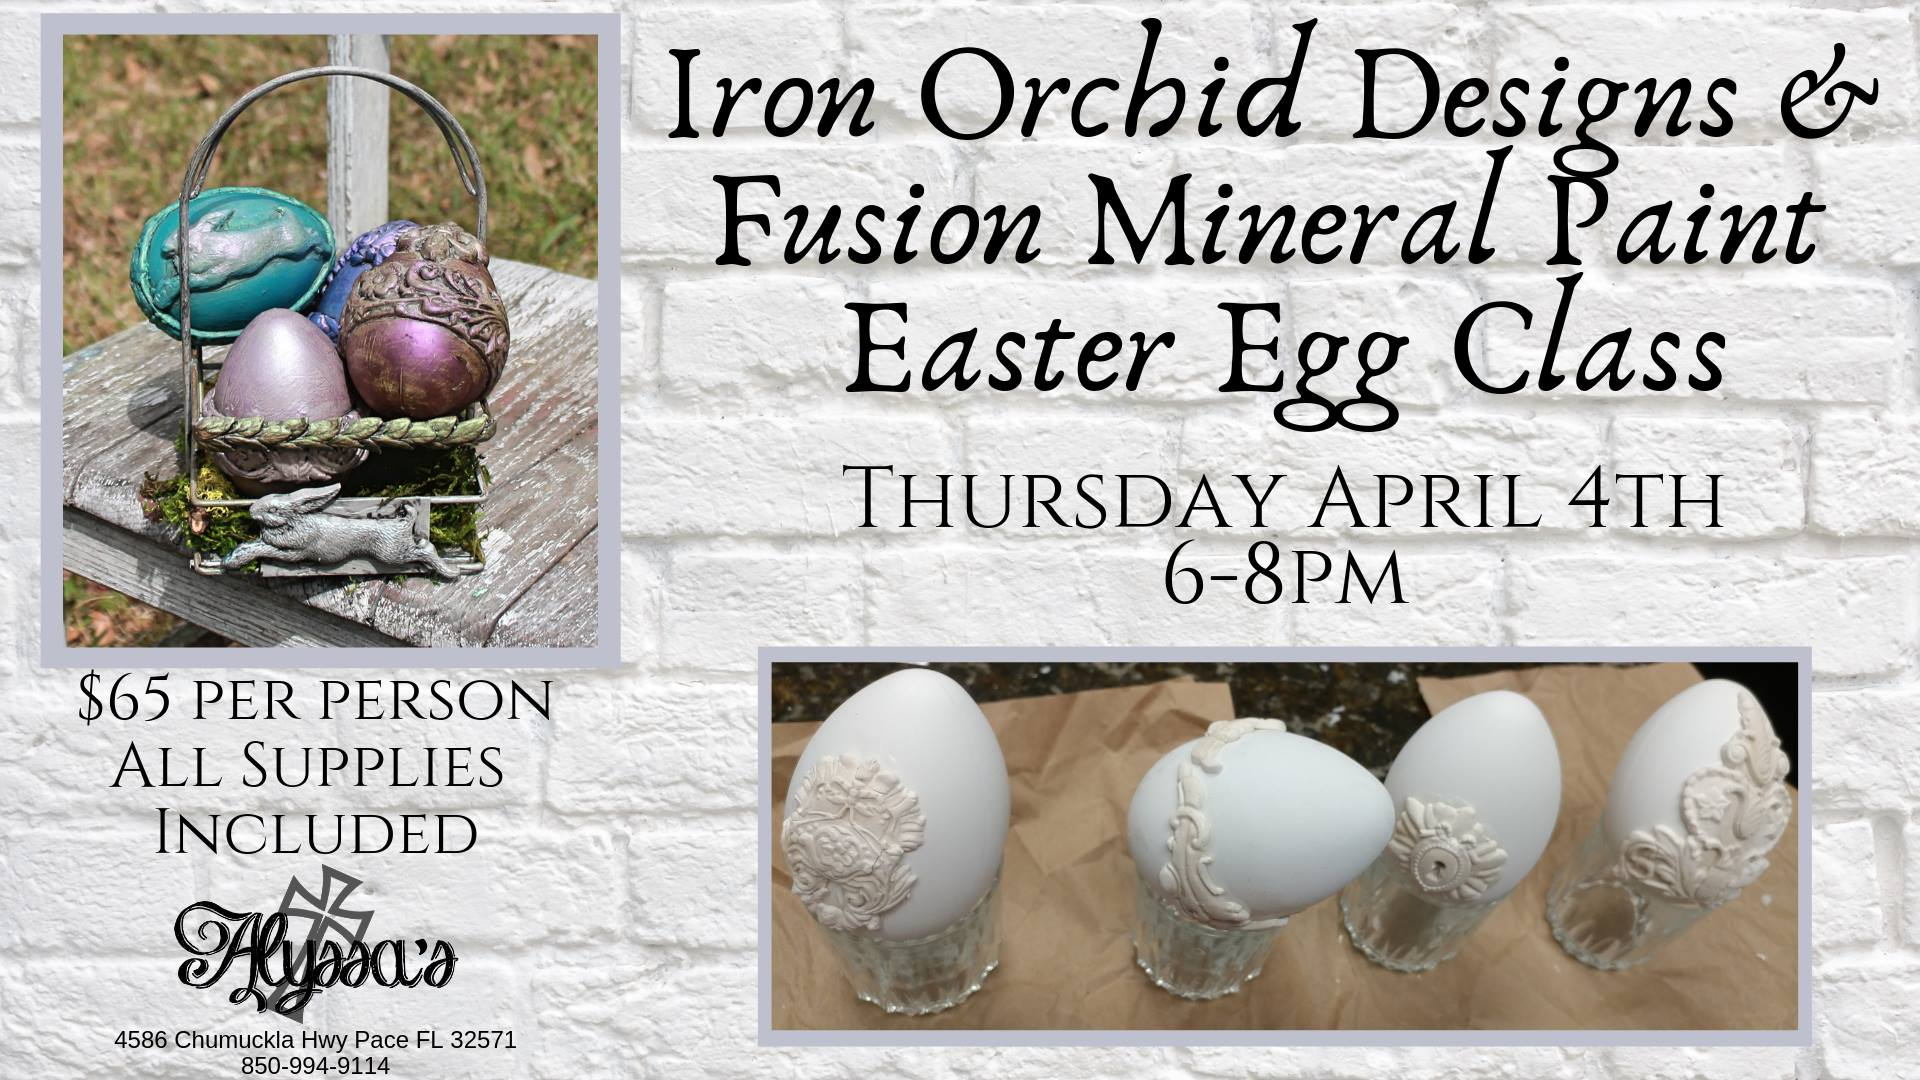 Iron Orchid Designs & Fusion Mineral Paint Easter Eggs and Basket Class April 4, 2019 at Alyssa's in Pace FL